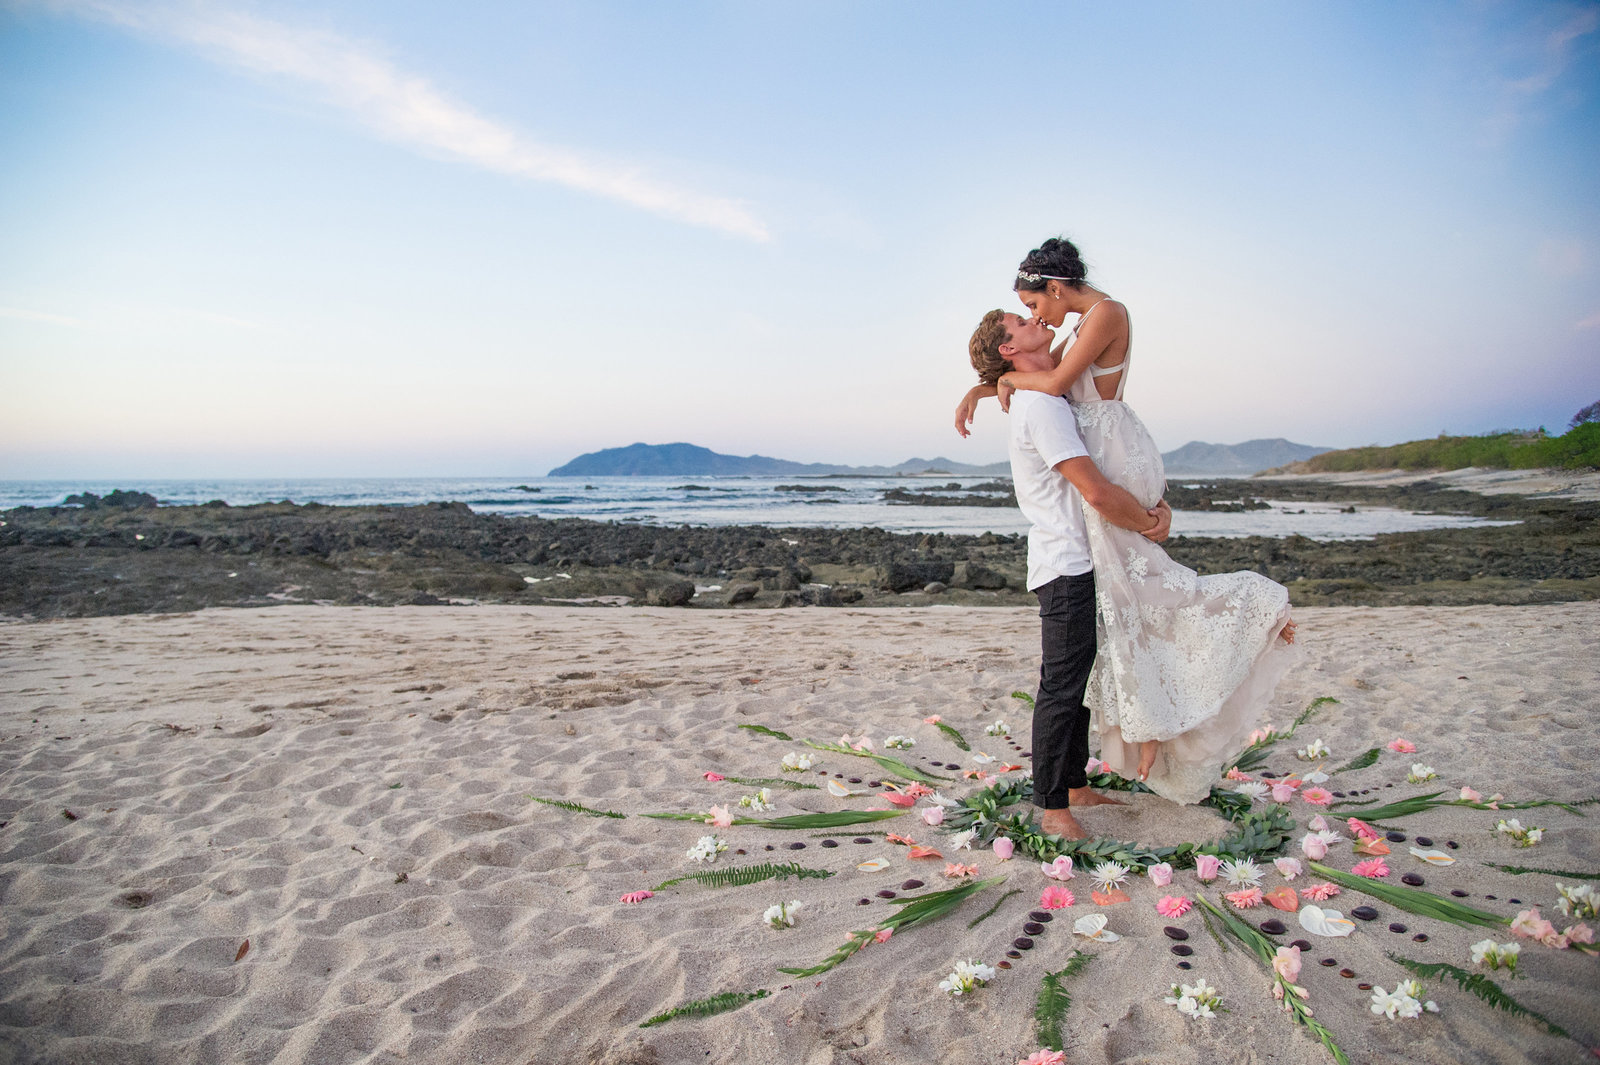 02-Destination Wedding Photography - Costa Rica Wedding Photographers - 18